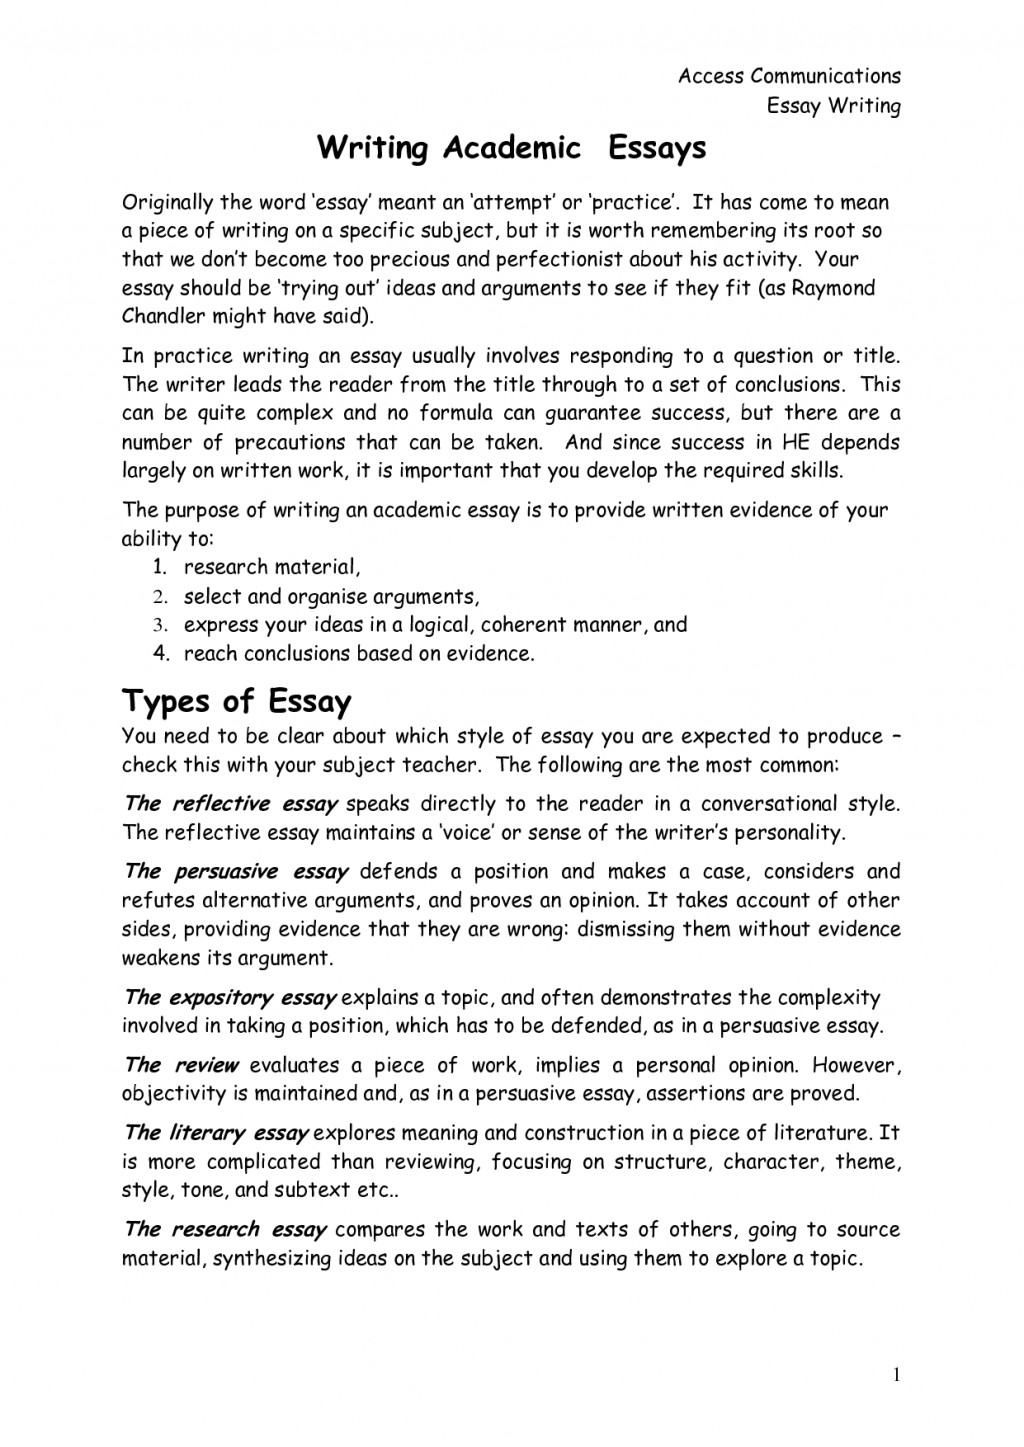 001 Essay Example What Is Good Academic To Write About Awful Writing Structure Skills Pdf Large